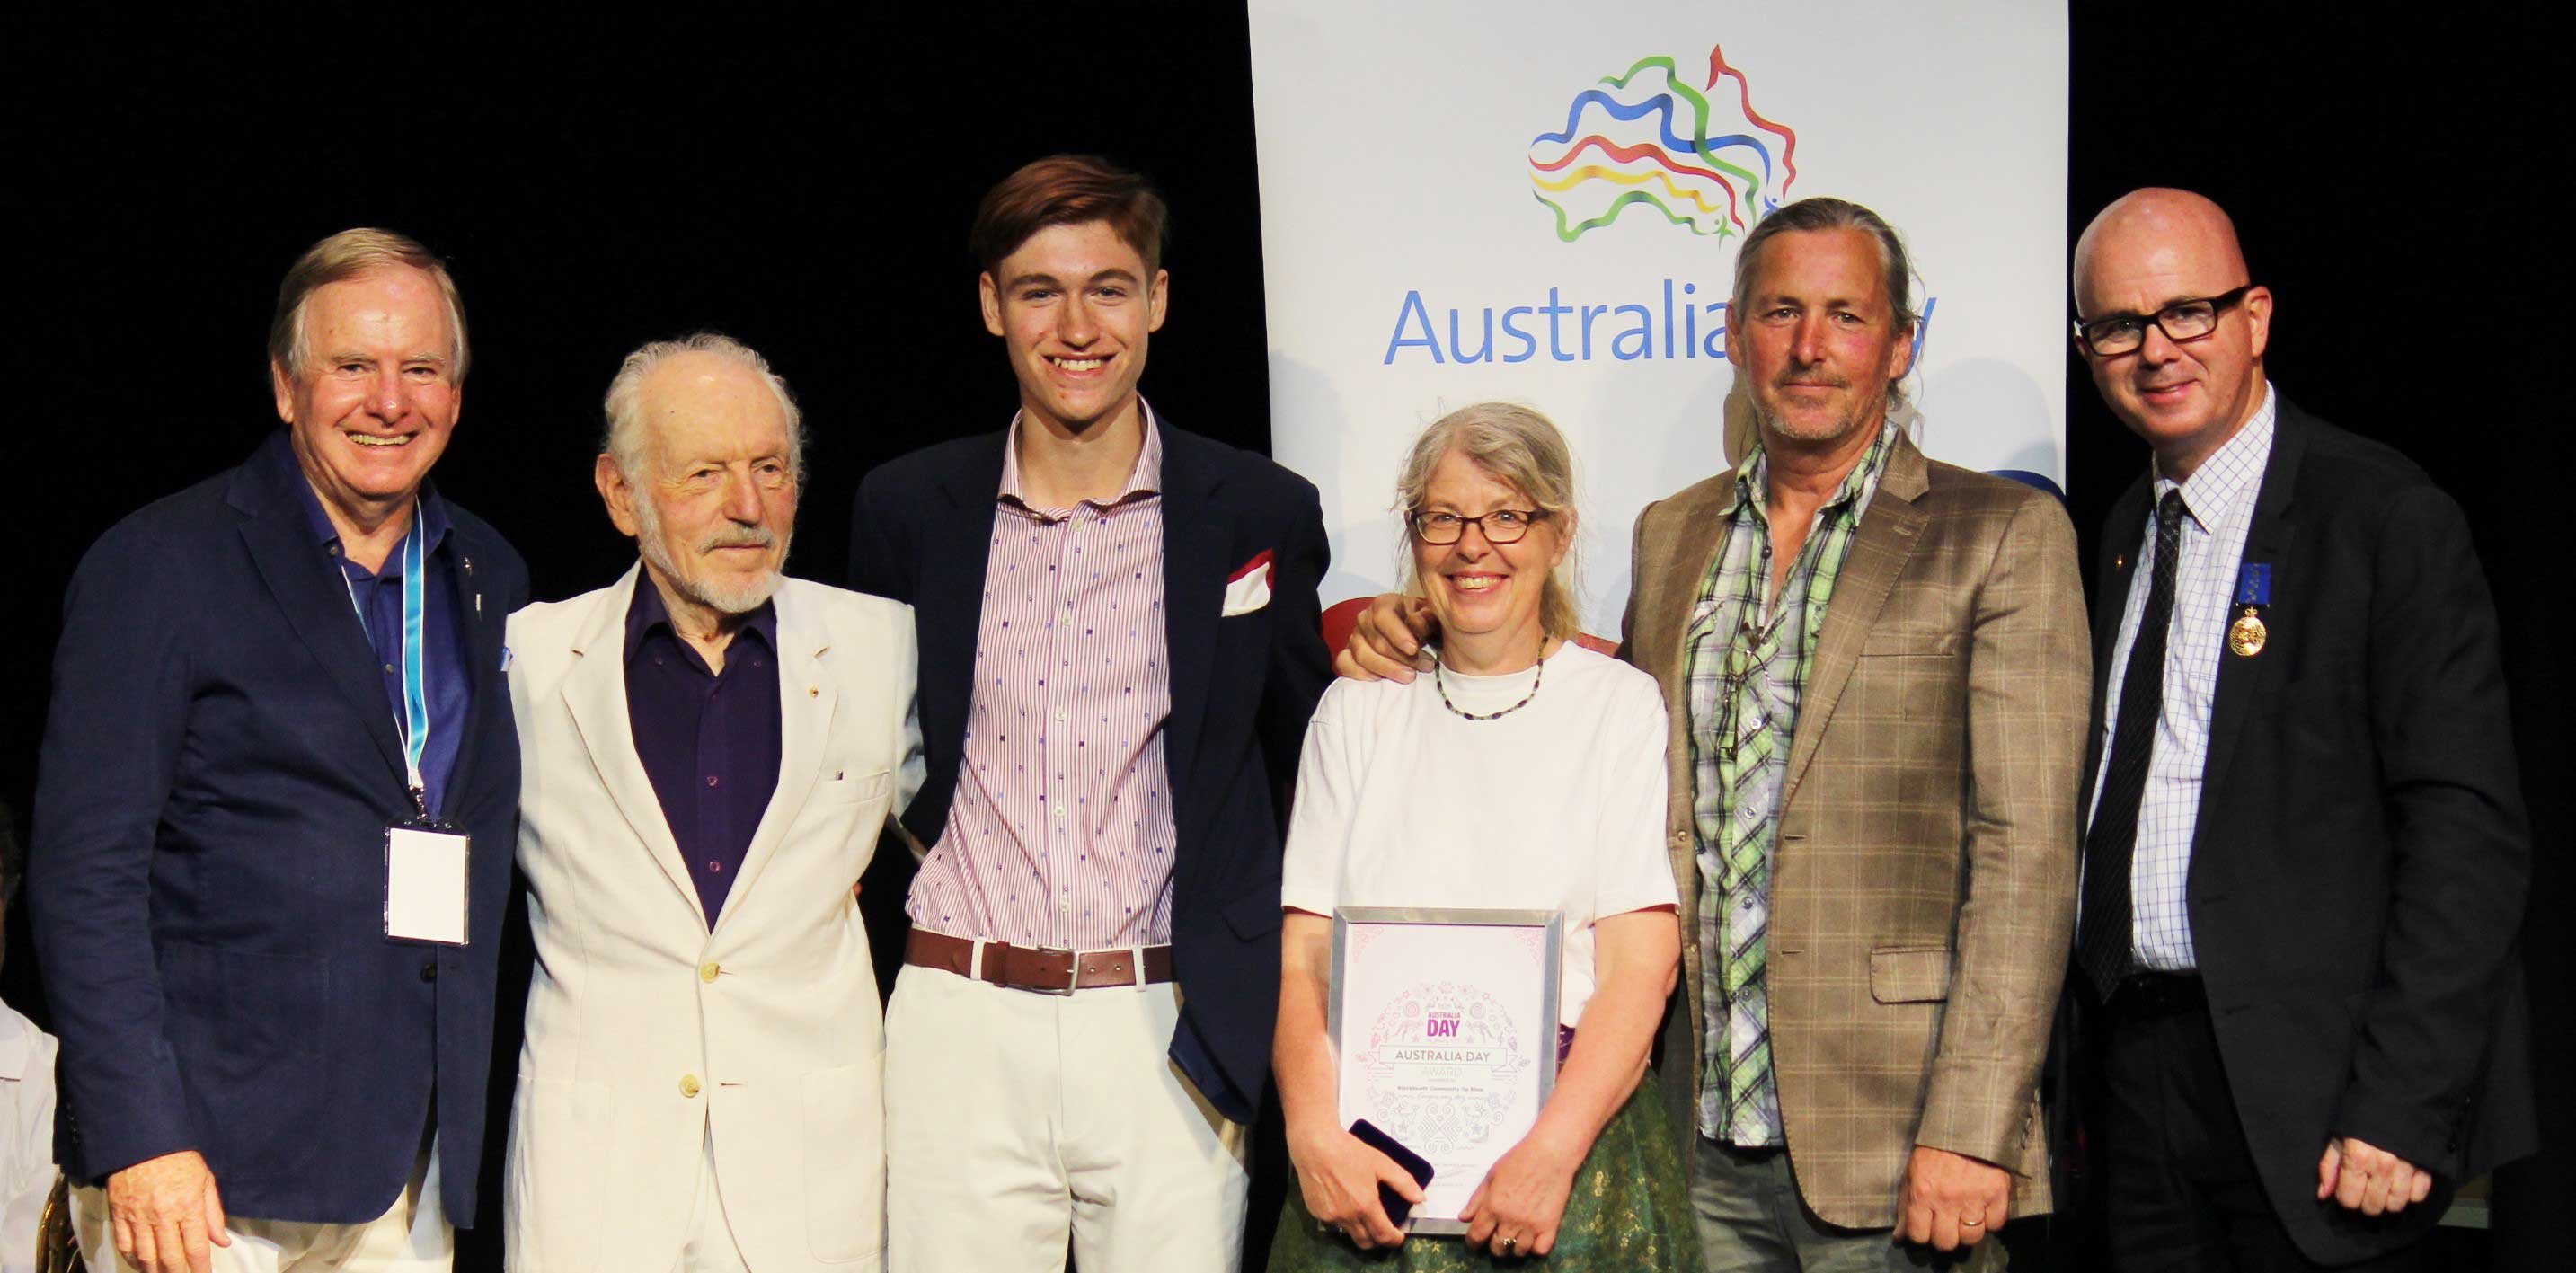 Blue Mountains City Council recognised three local citizens for their outstanding contribution to the community(left to right) Blue Mountains Australia Day Ambassador, Graham Ross, 2019 Citizen of the Year – George Winston, 2019 Young Citizen of the Year – Adisen Wright,  2019 Community Achievement of the Year – June and David O'Brien from Blackheath Community Op Shop, and Mayor, Cr Mark Greenhill.